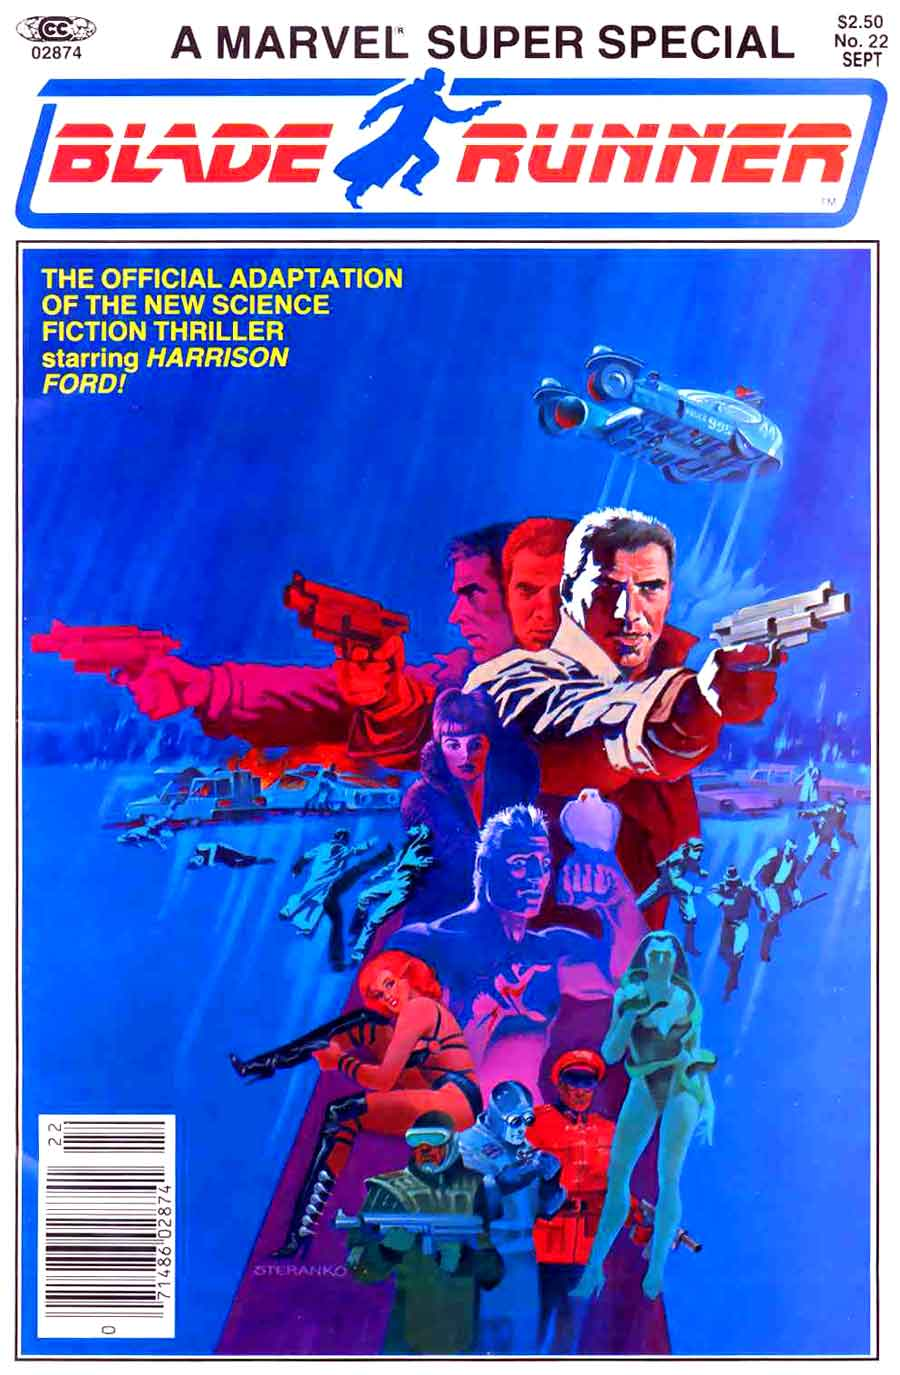 Marvel Super Special #22 / Blade Runner - Jim Steranko cover